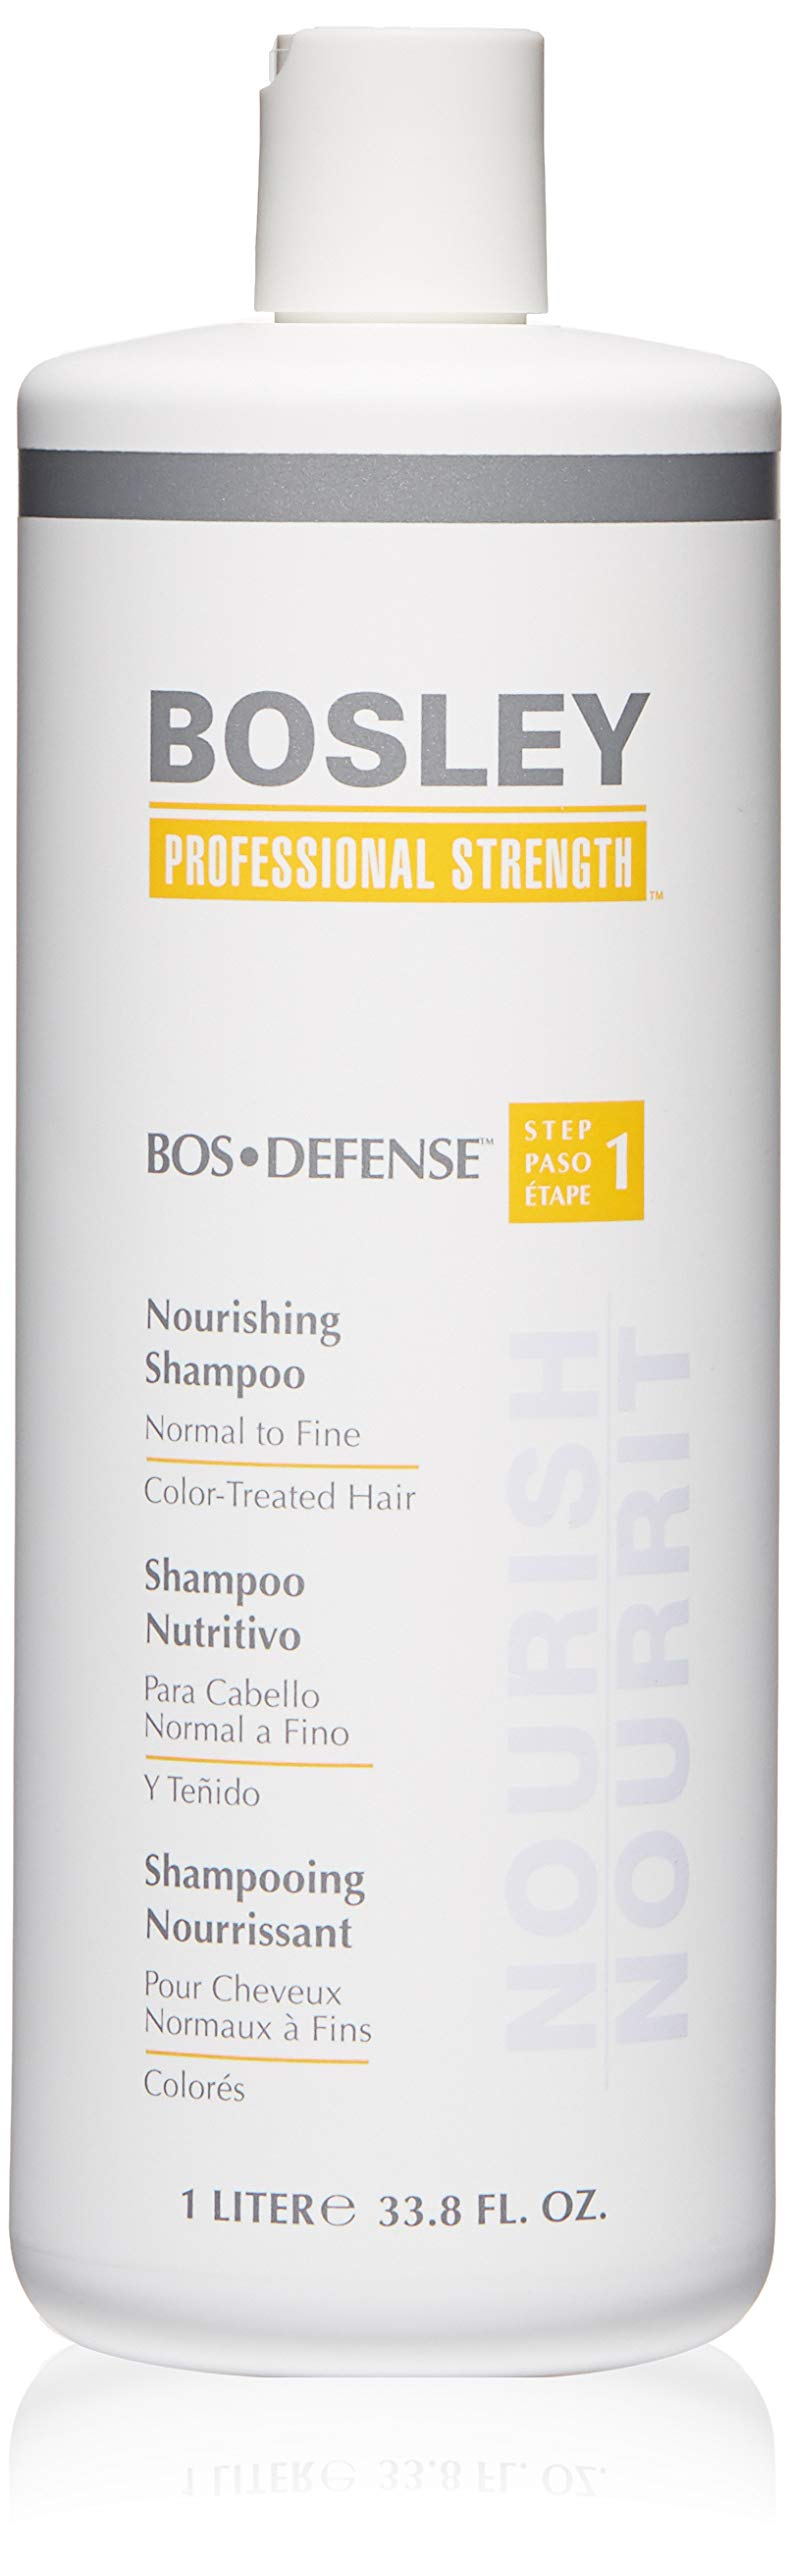 Bosley Bos-Defense Nourishing Shampoo, 33.8 Ounce by Bosley Professional Strength